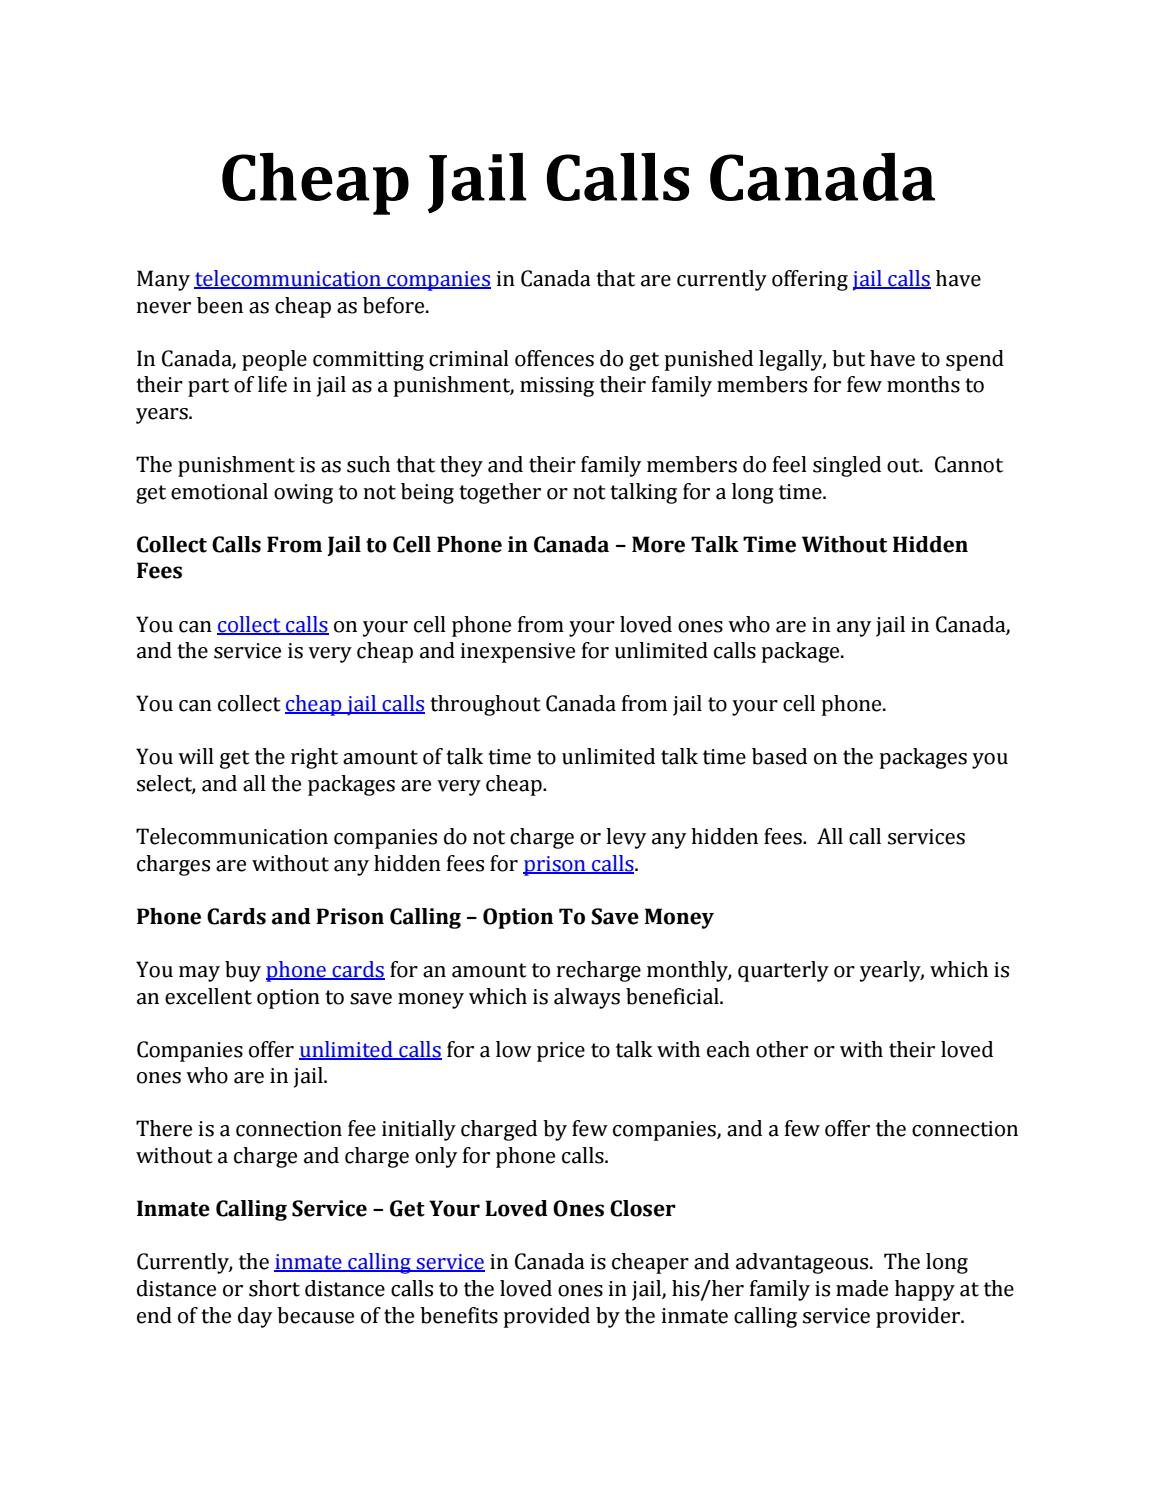 Cheap jail calls canada by FedPhoneLine - issuu